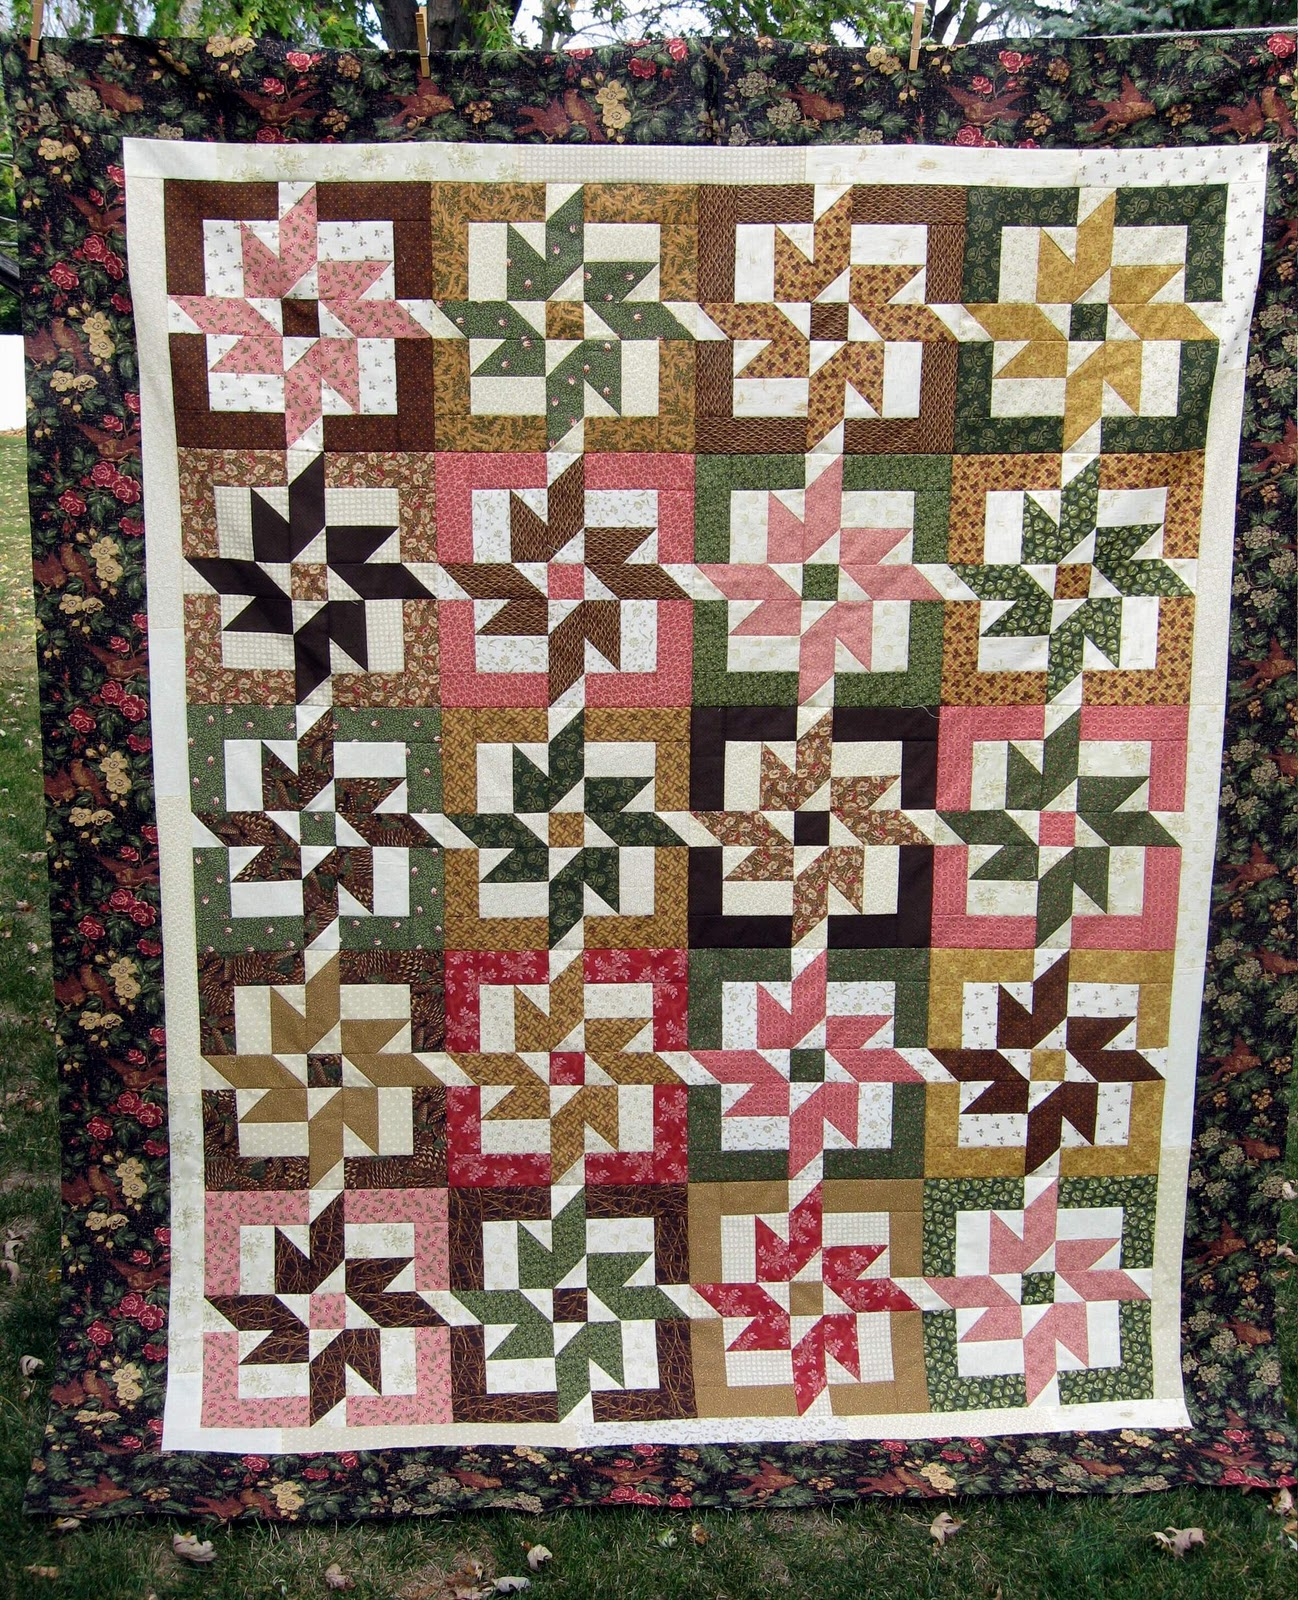 Unusual Quilting Ideas : Unusual Quilt Patterns on Pinterest Quilts, Quilt Patterns and Quilting